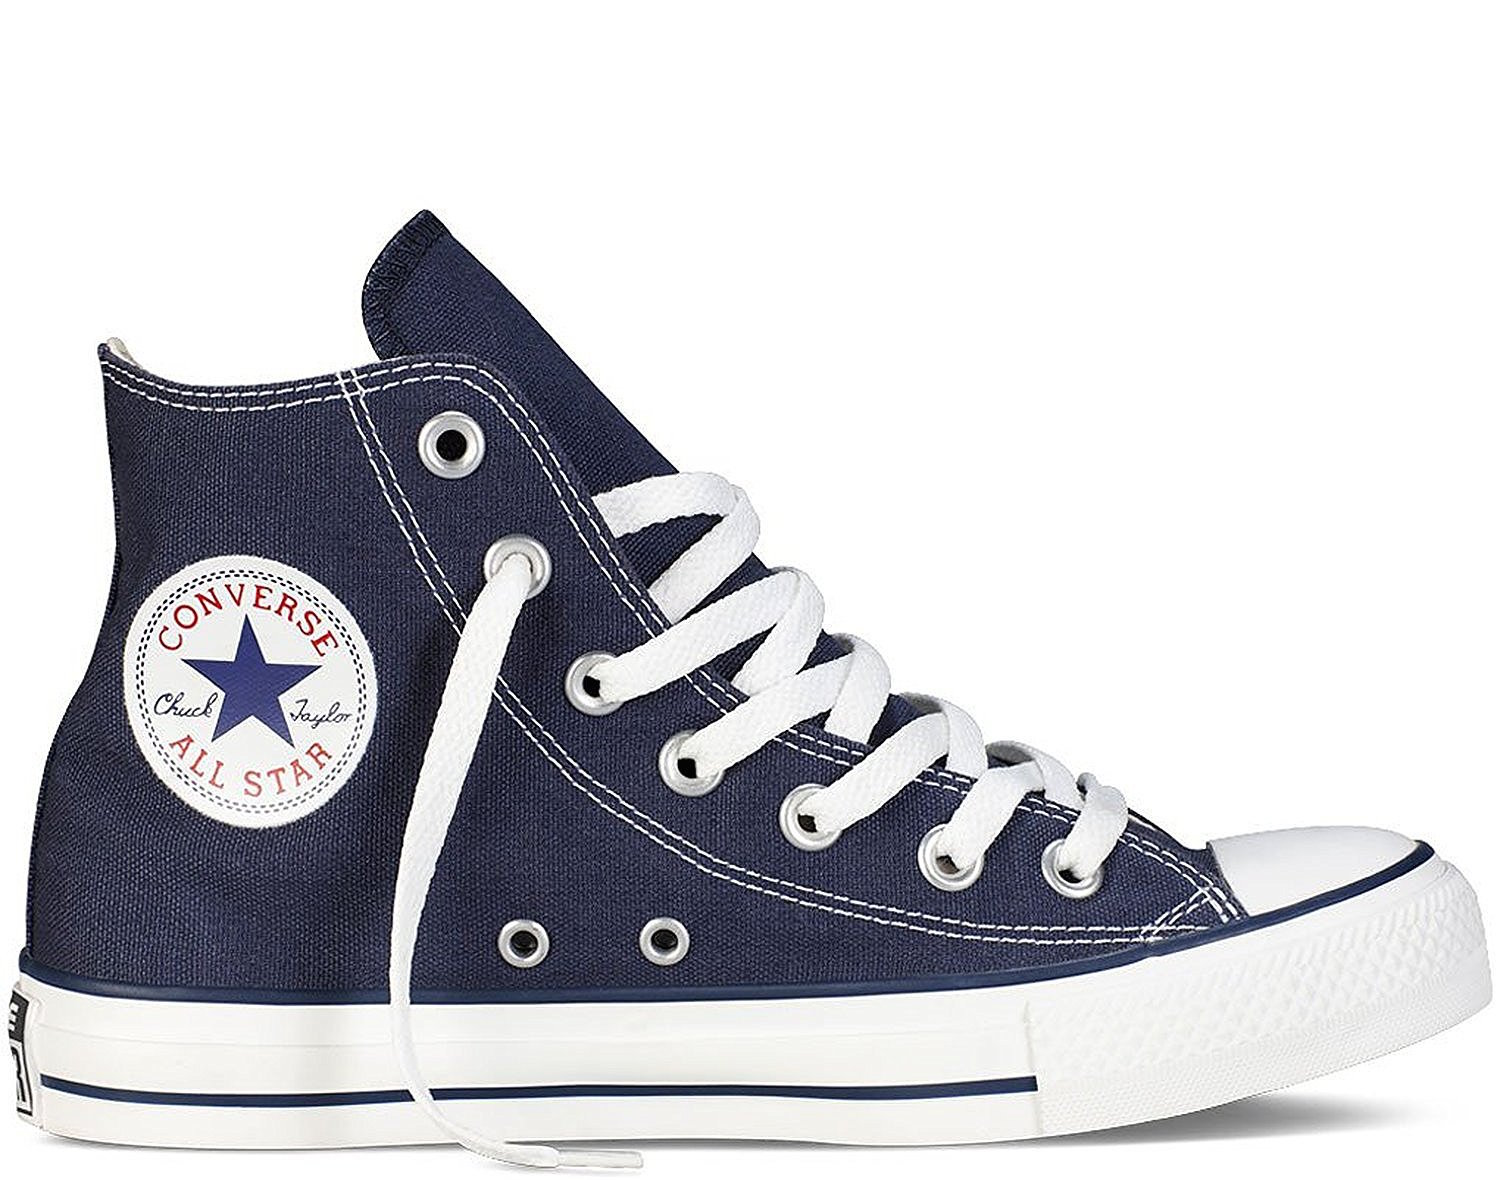 converse-chuck-taylor-all-star-navy-high-top-sneakers